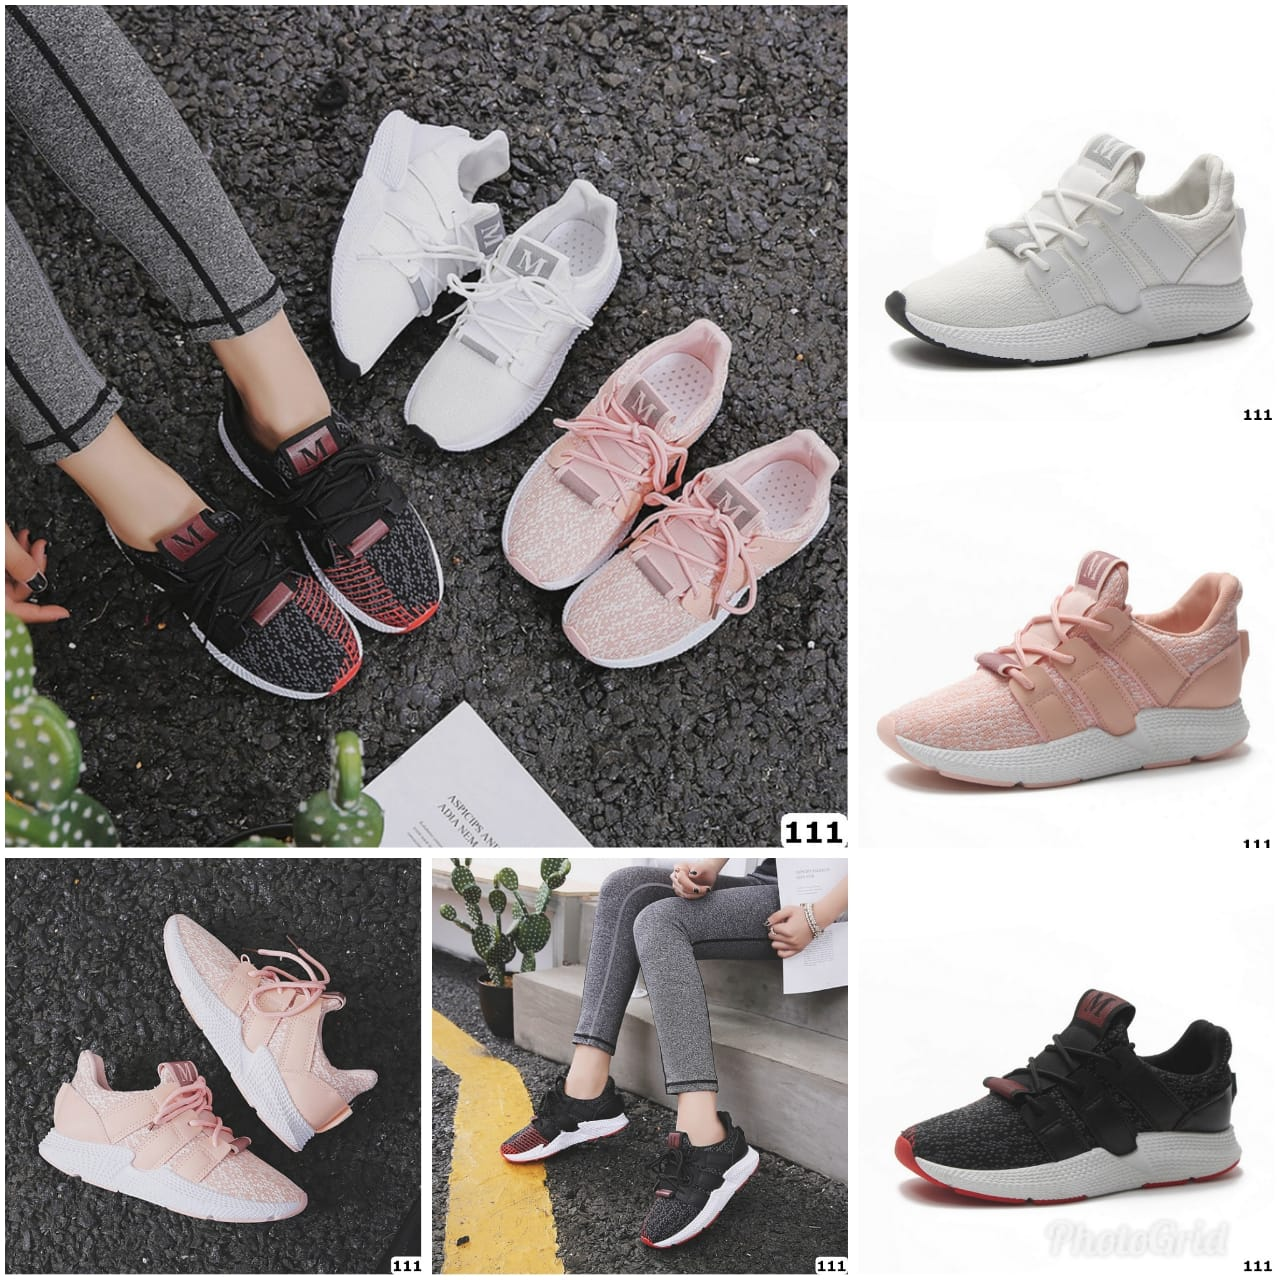 Kode GI 006 : Darlen Breathable Mesh Sneaker Shoes 111 - PSB 9